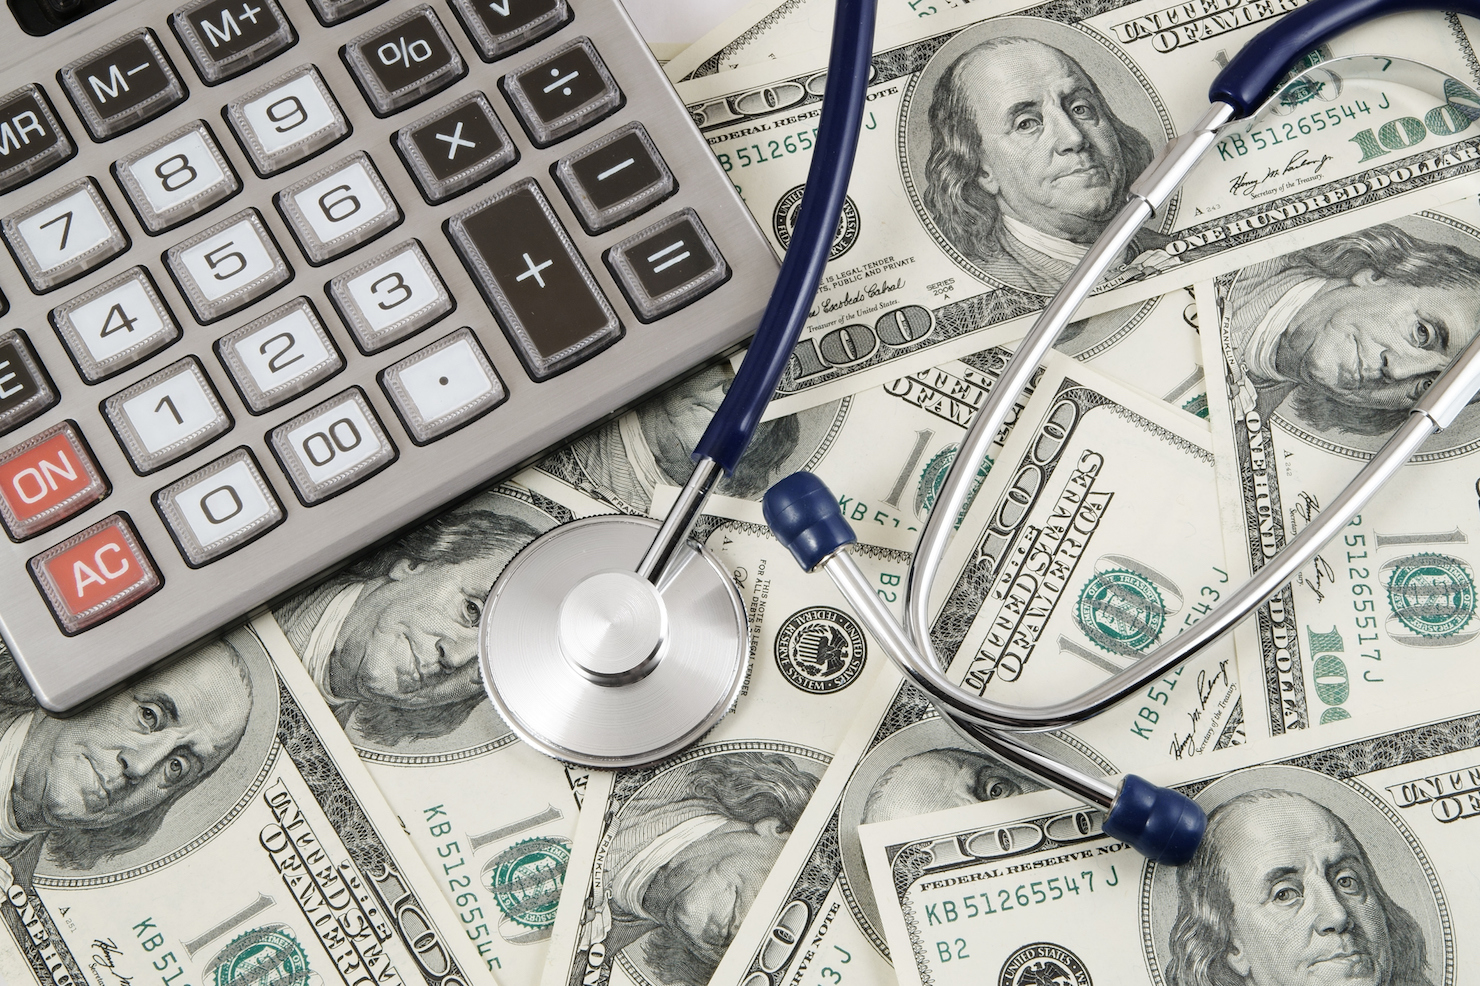 Calculator and stethoscope on banknotes background